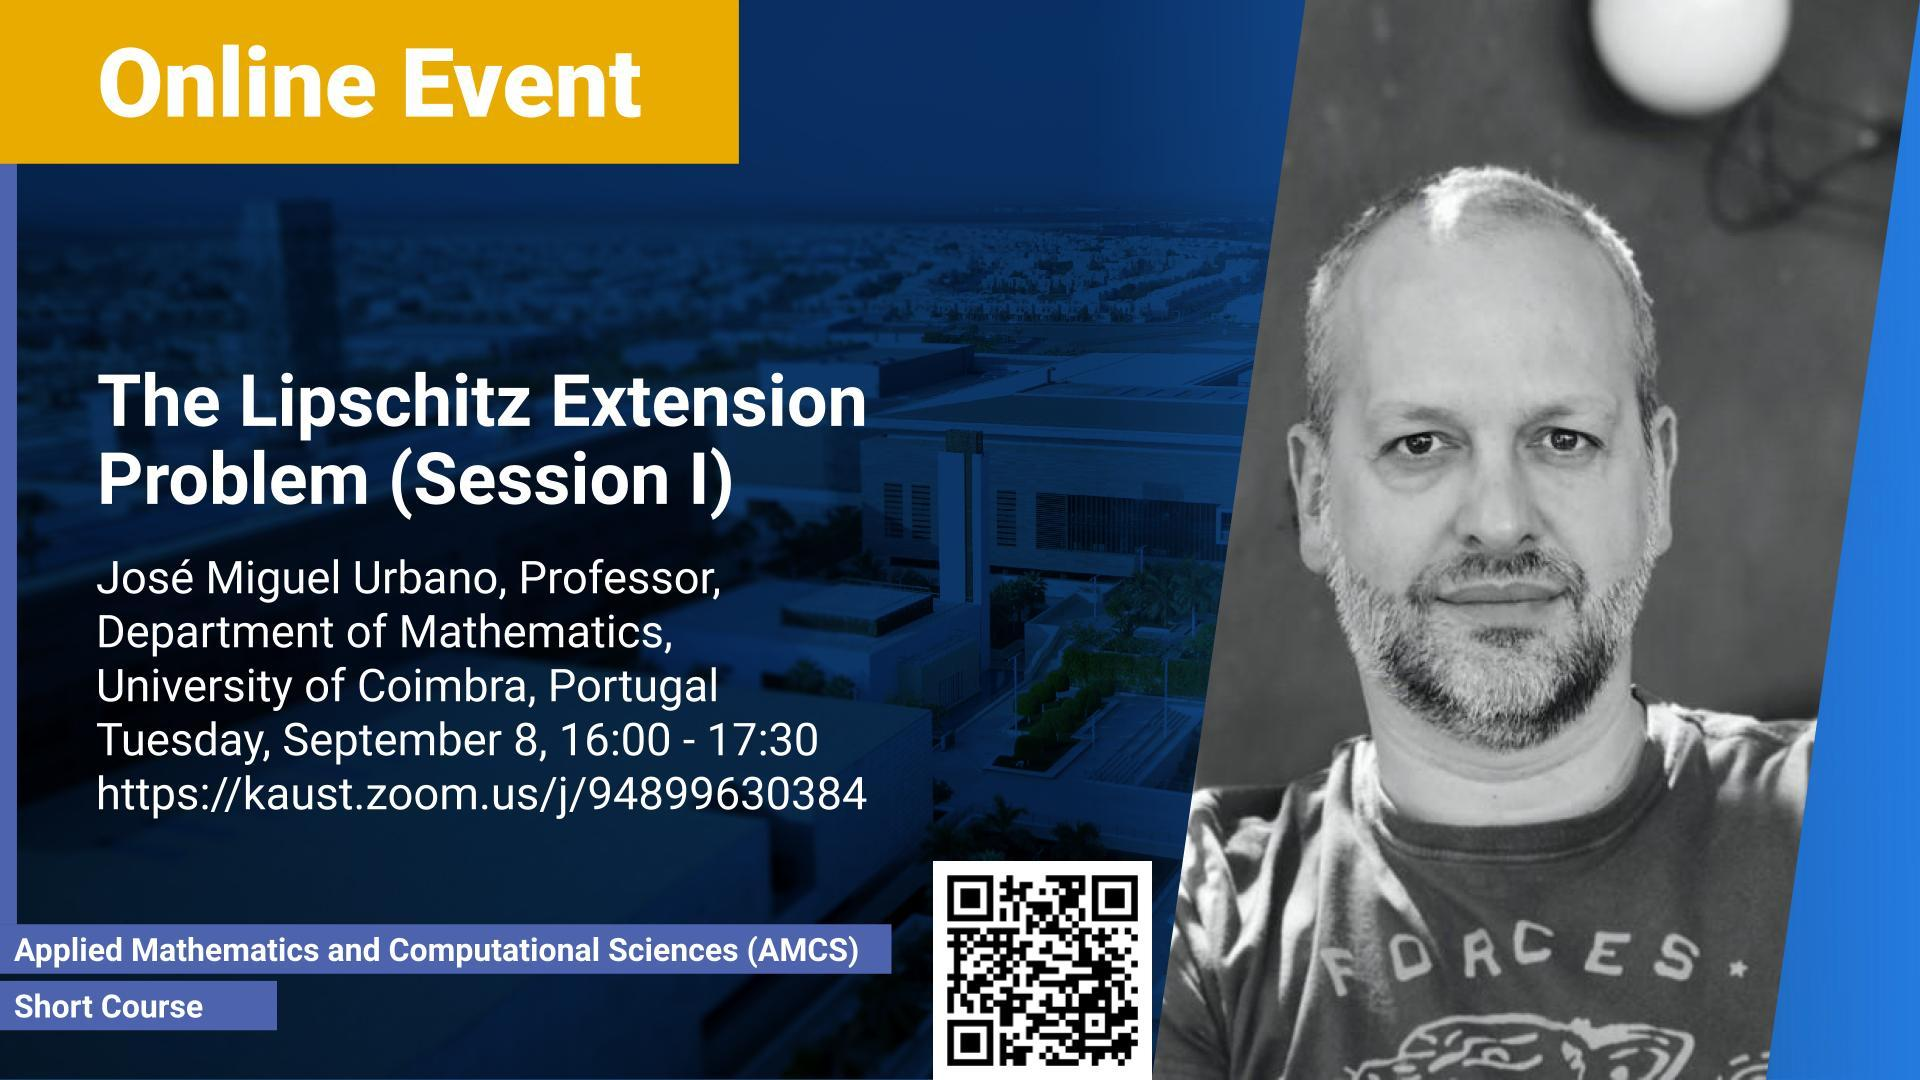 KAUST CEMSE AMCS Short Course José Miguel Urbano The Lipschitz Extension Problem (Session I)